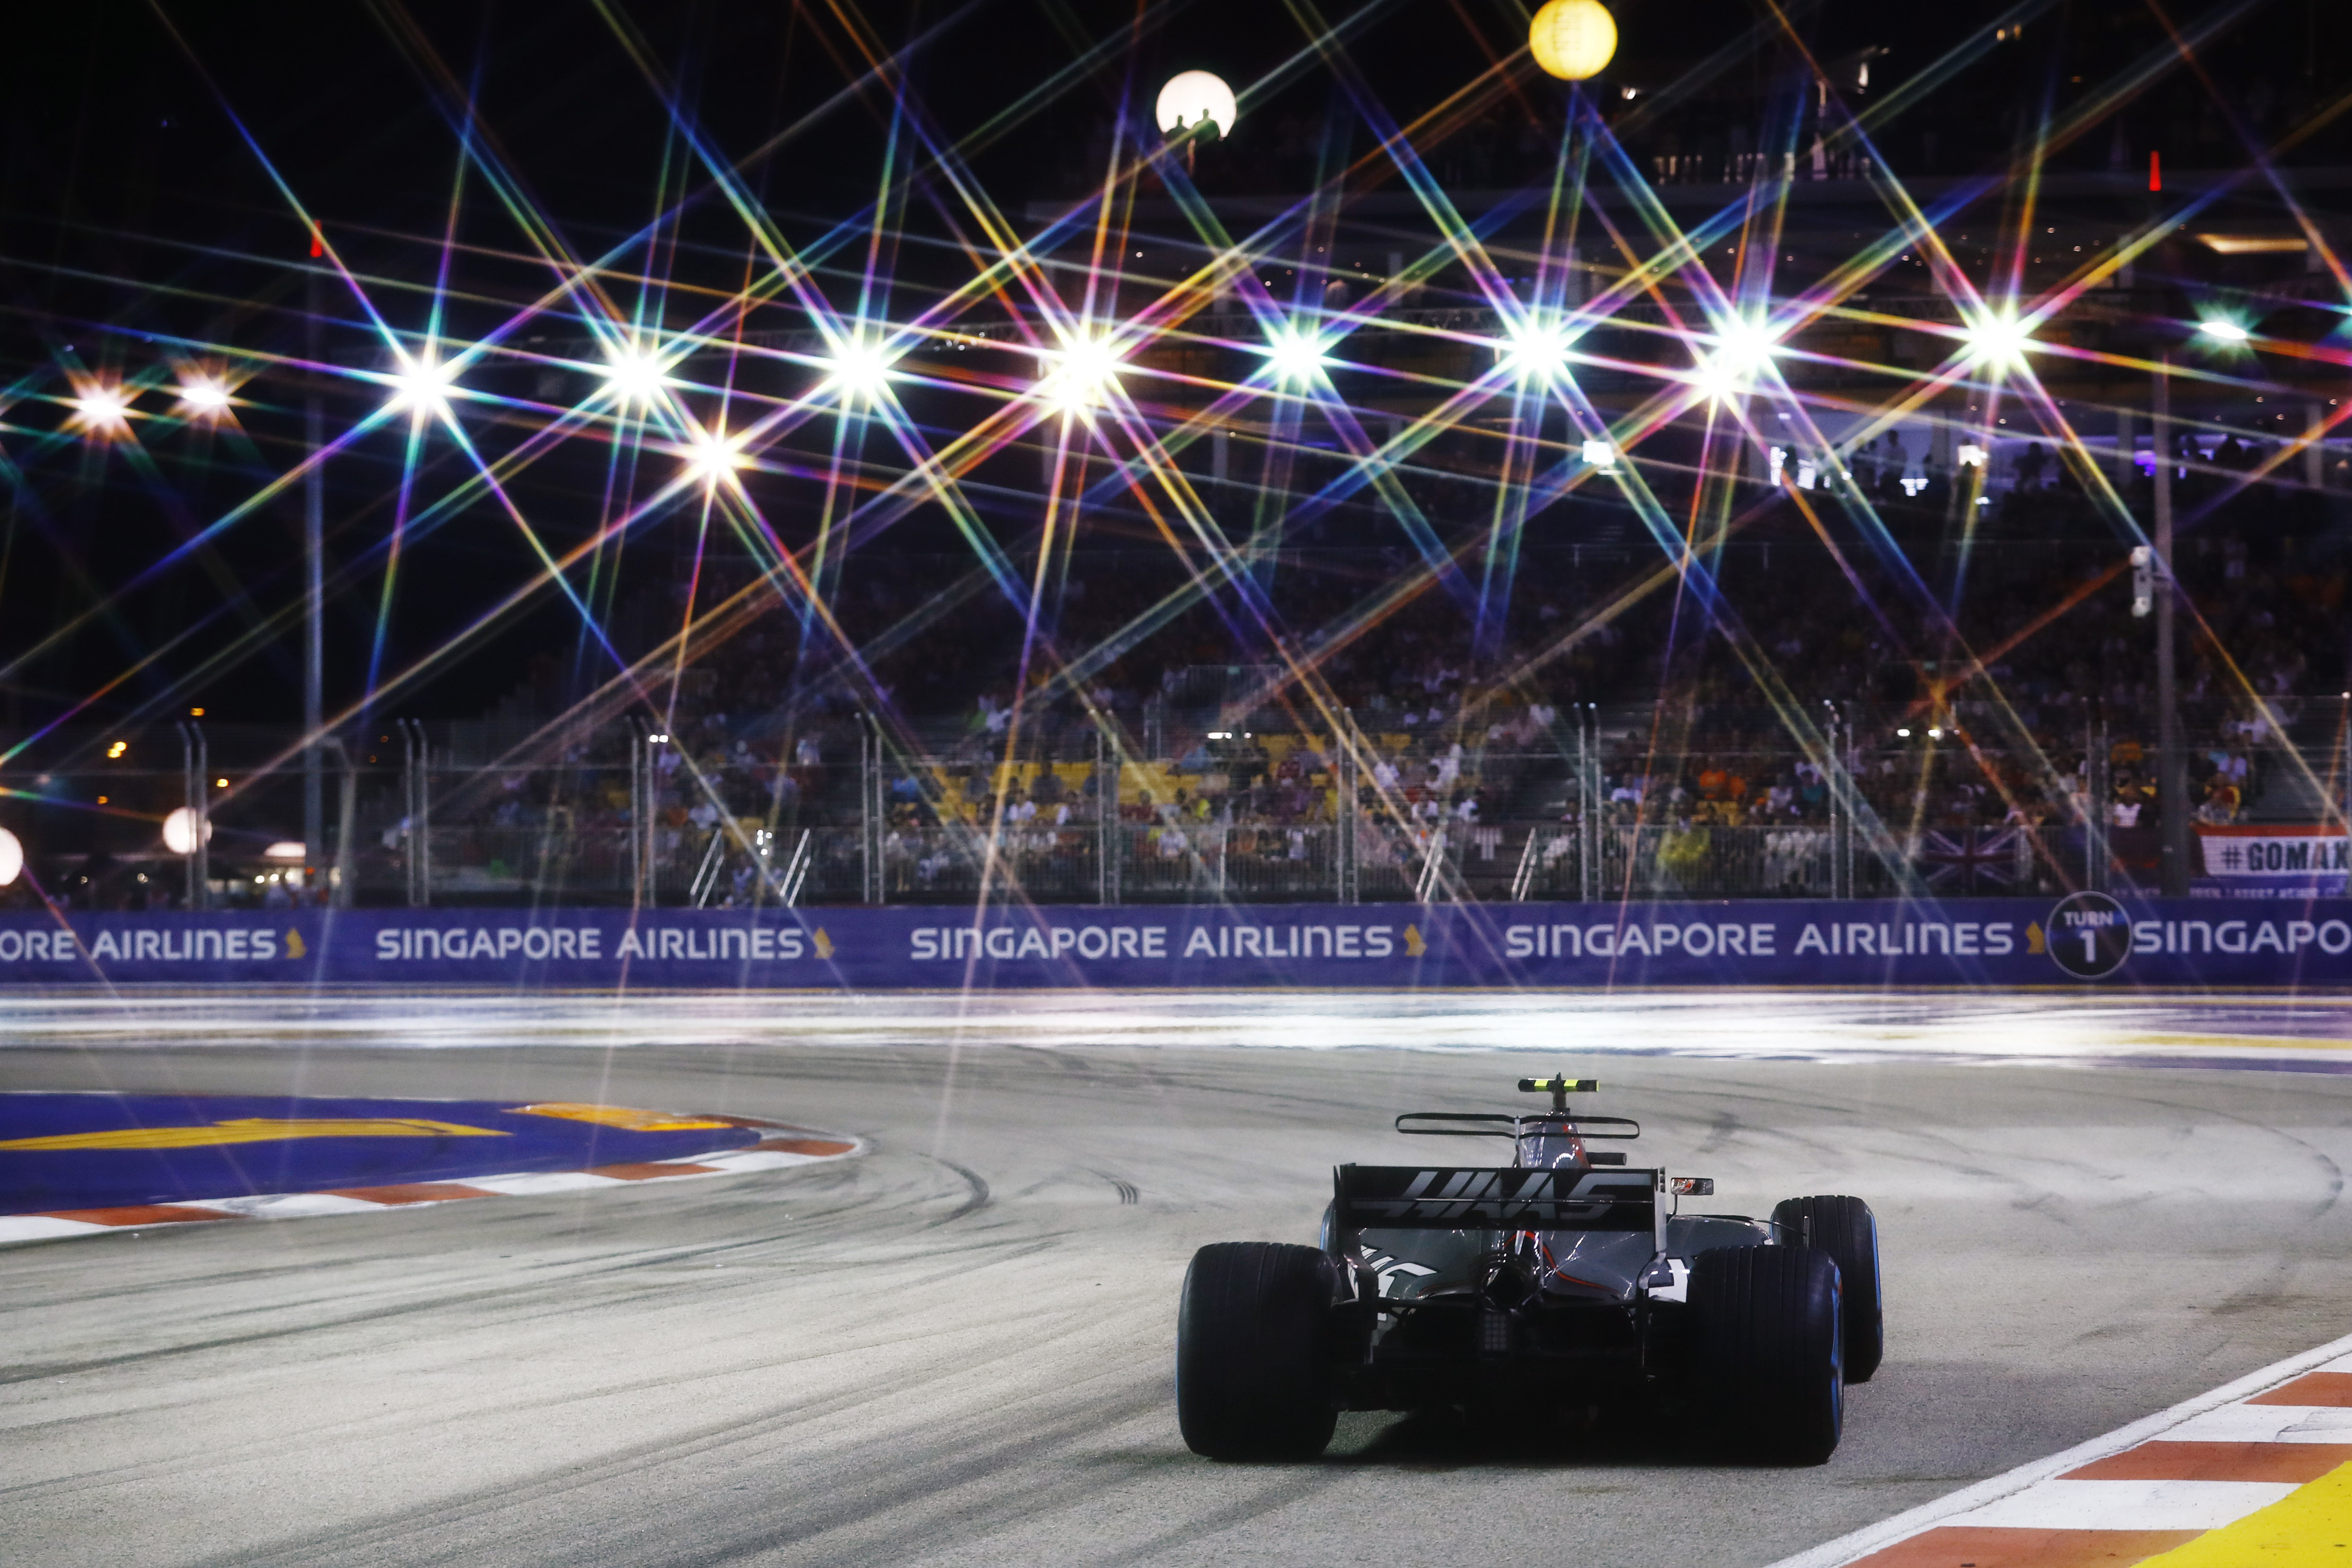 Racecar on Formula 1 track at night